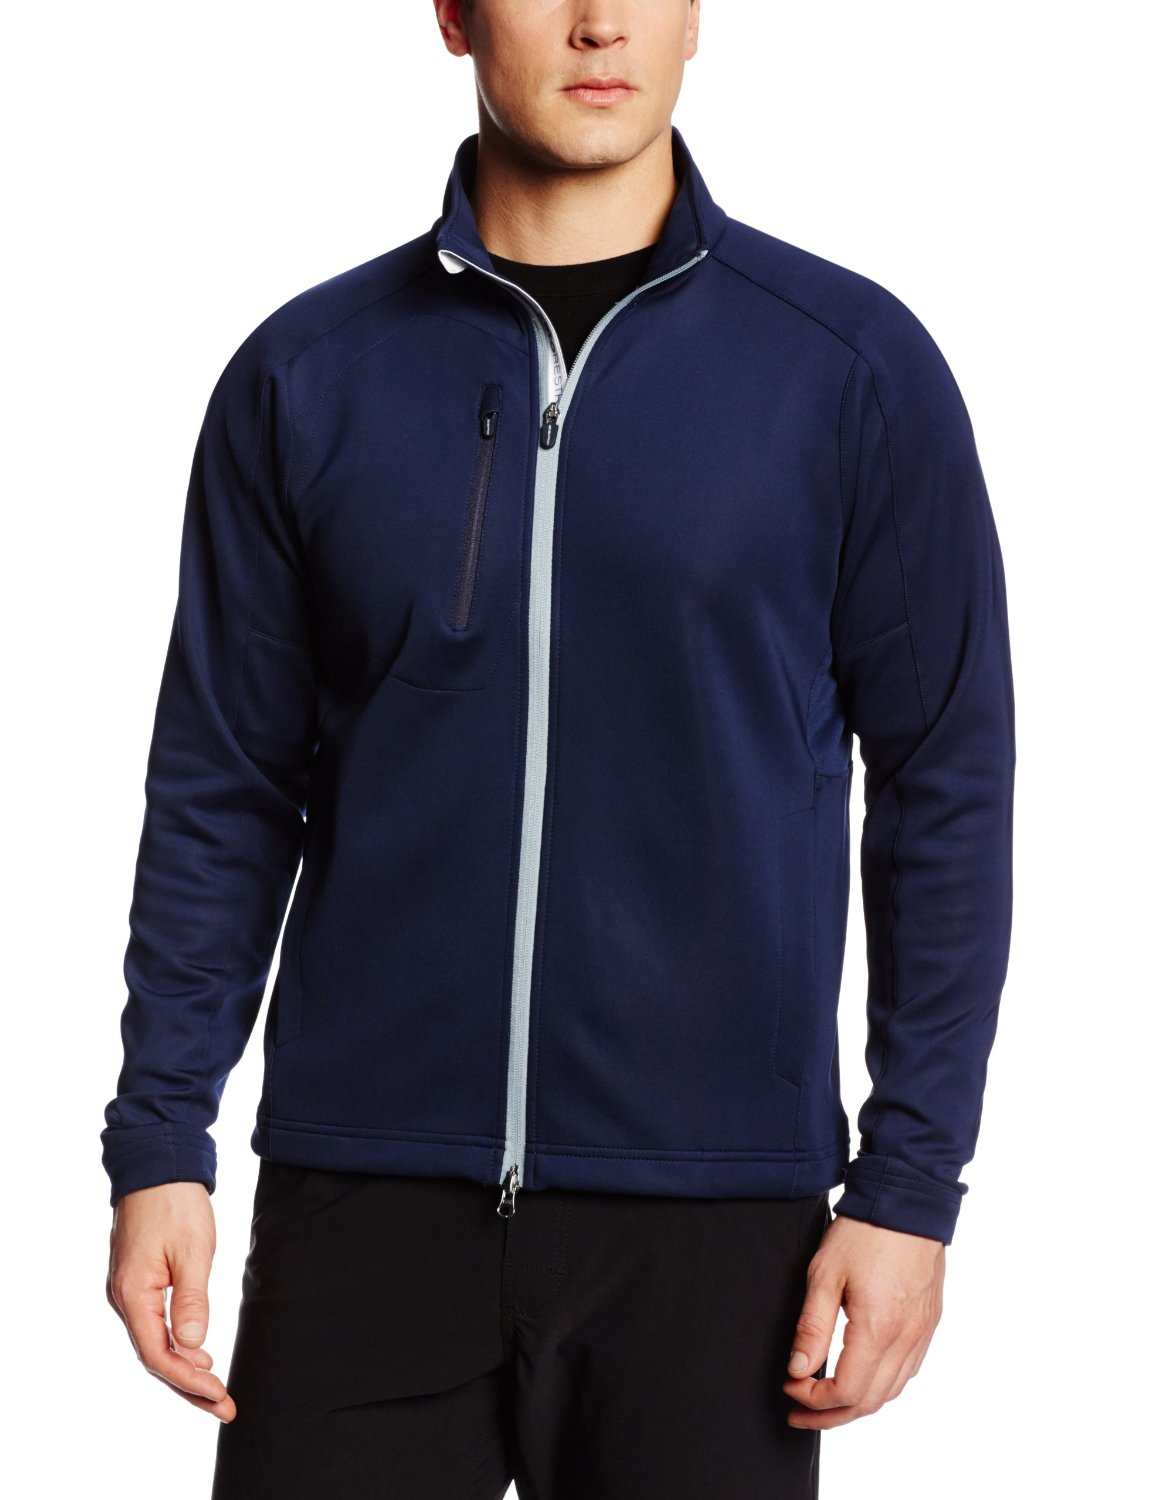 Mens Zero Restriction Z500 Full Zip Golf Jackets